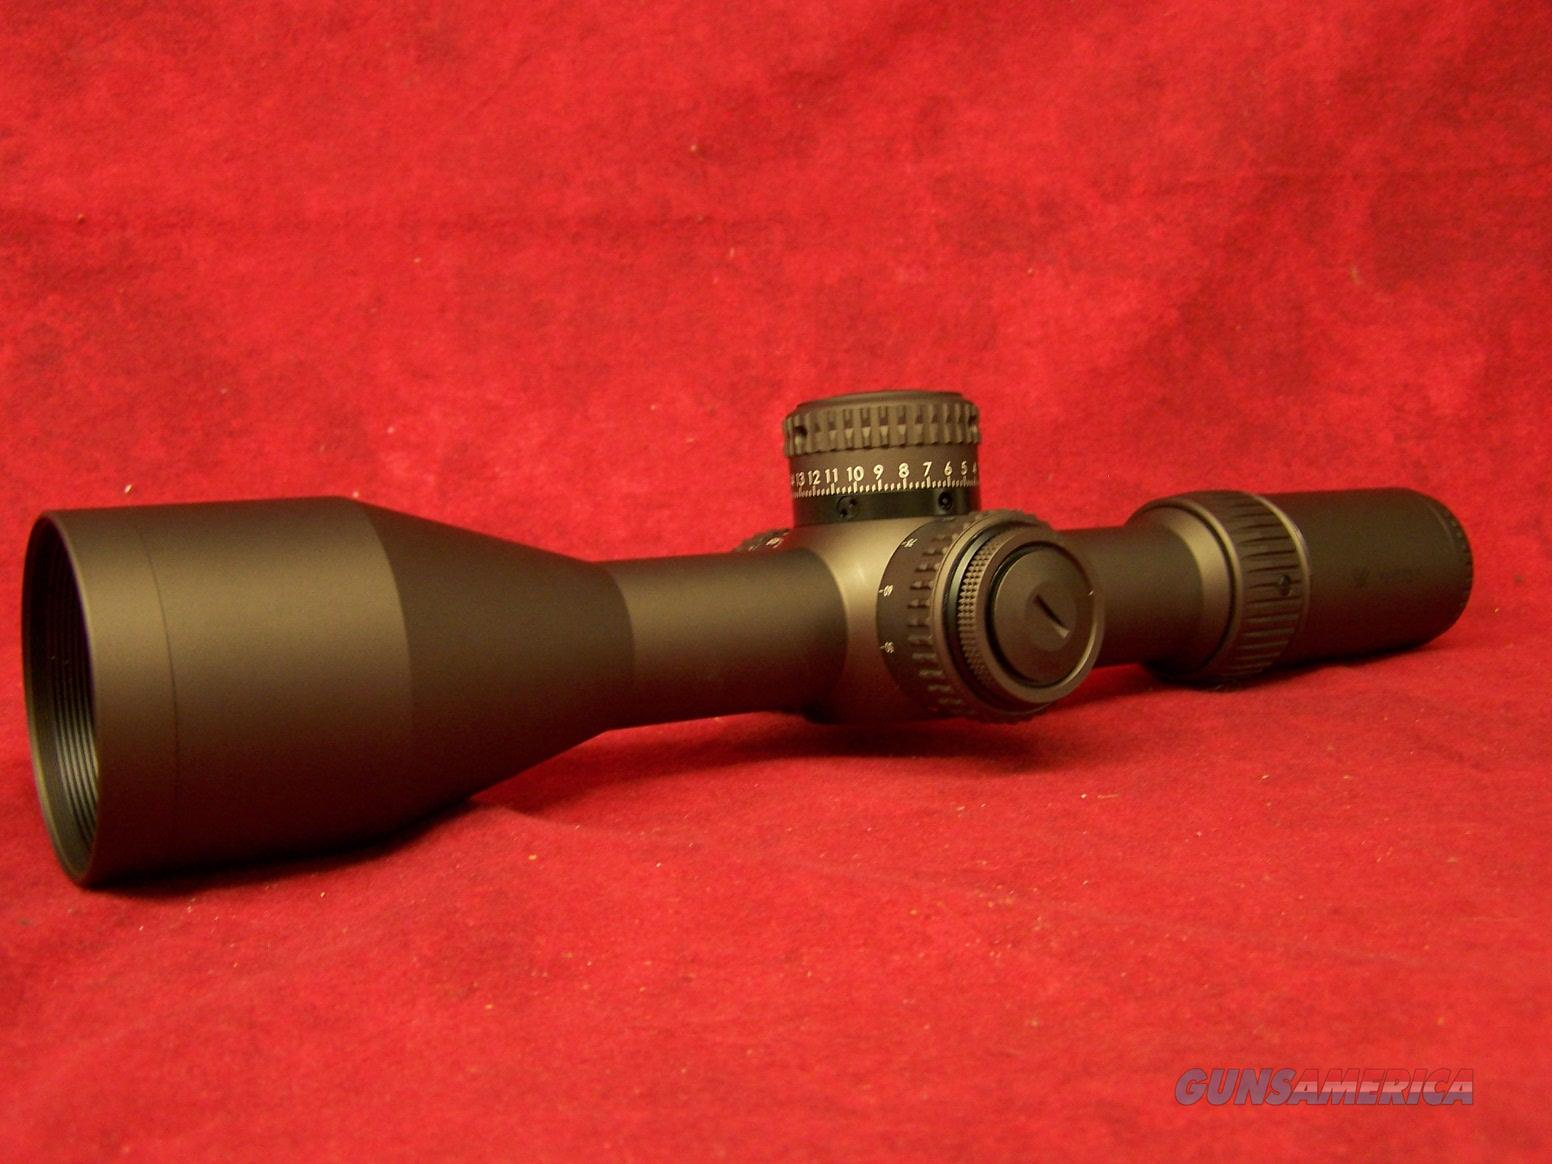 Vortex Razor HD Gen II  4.5x27 56mm Objective 34mm Tube  Non-Guns > Scopes/Mounts/Rings & Optics > Rifle Scopes > Variable Focal Length